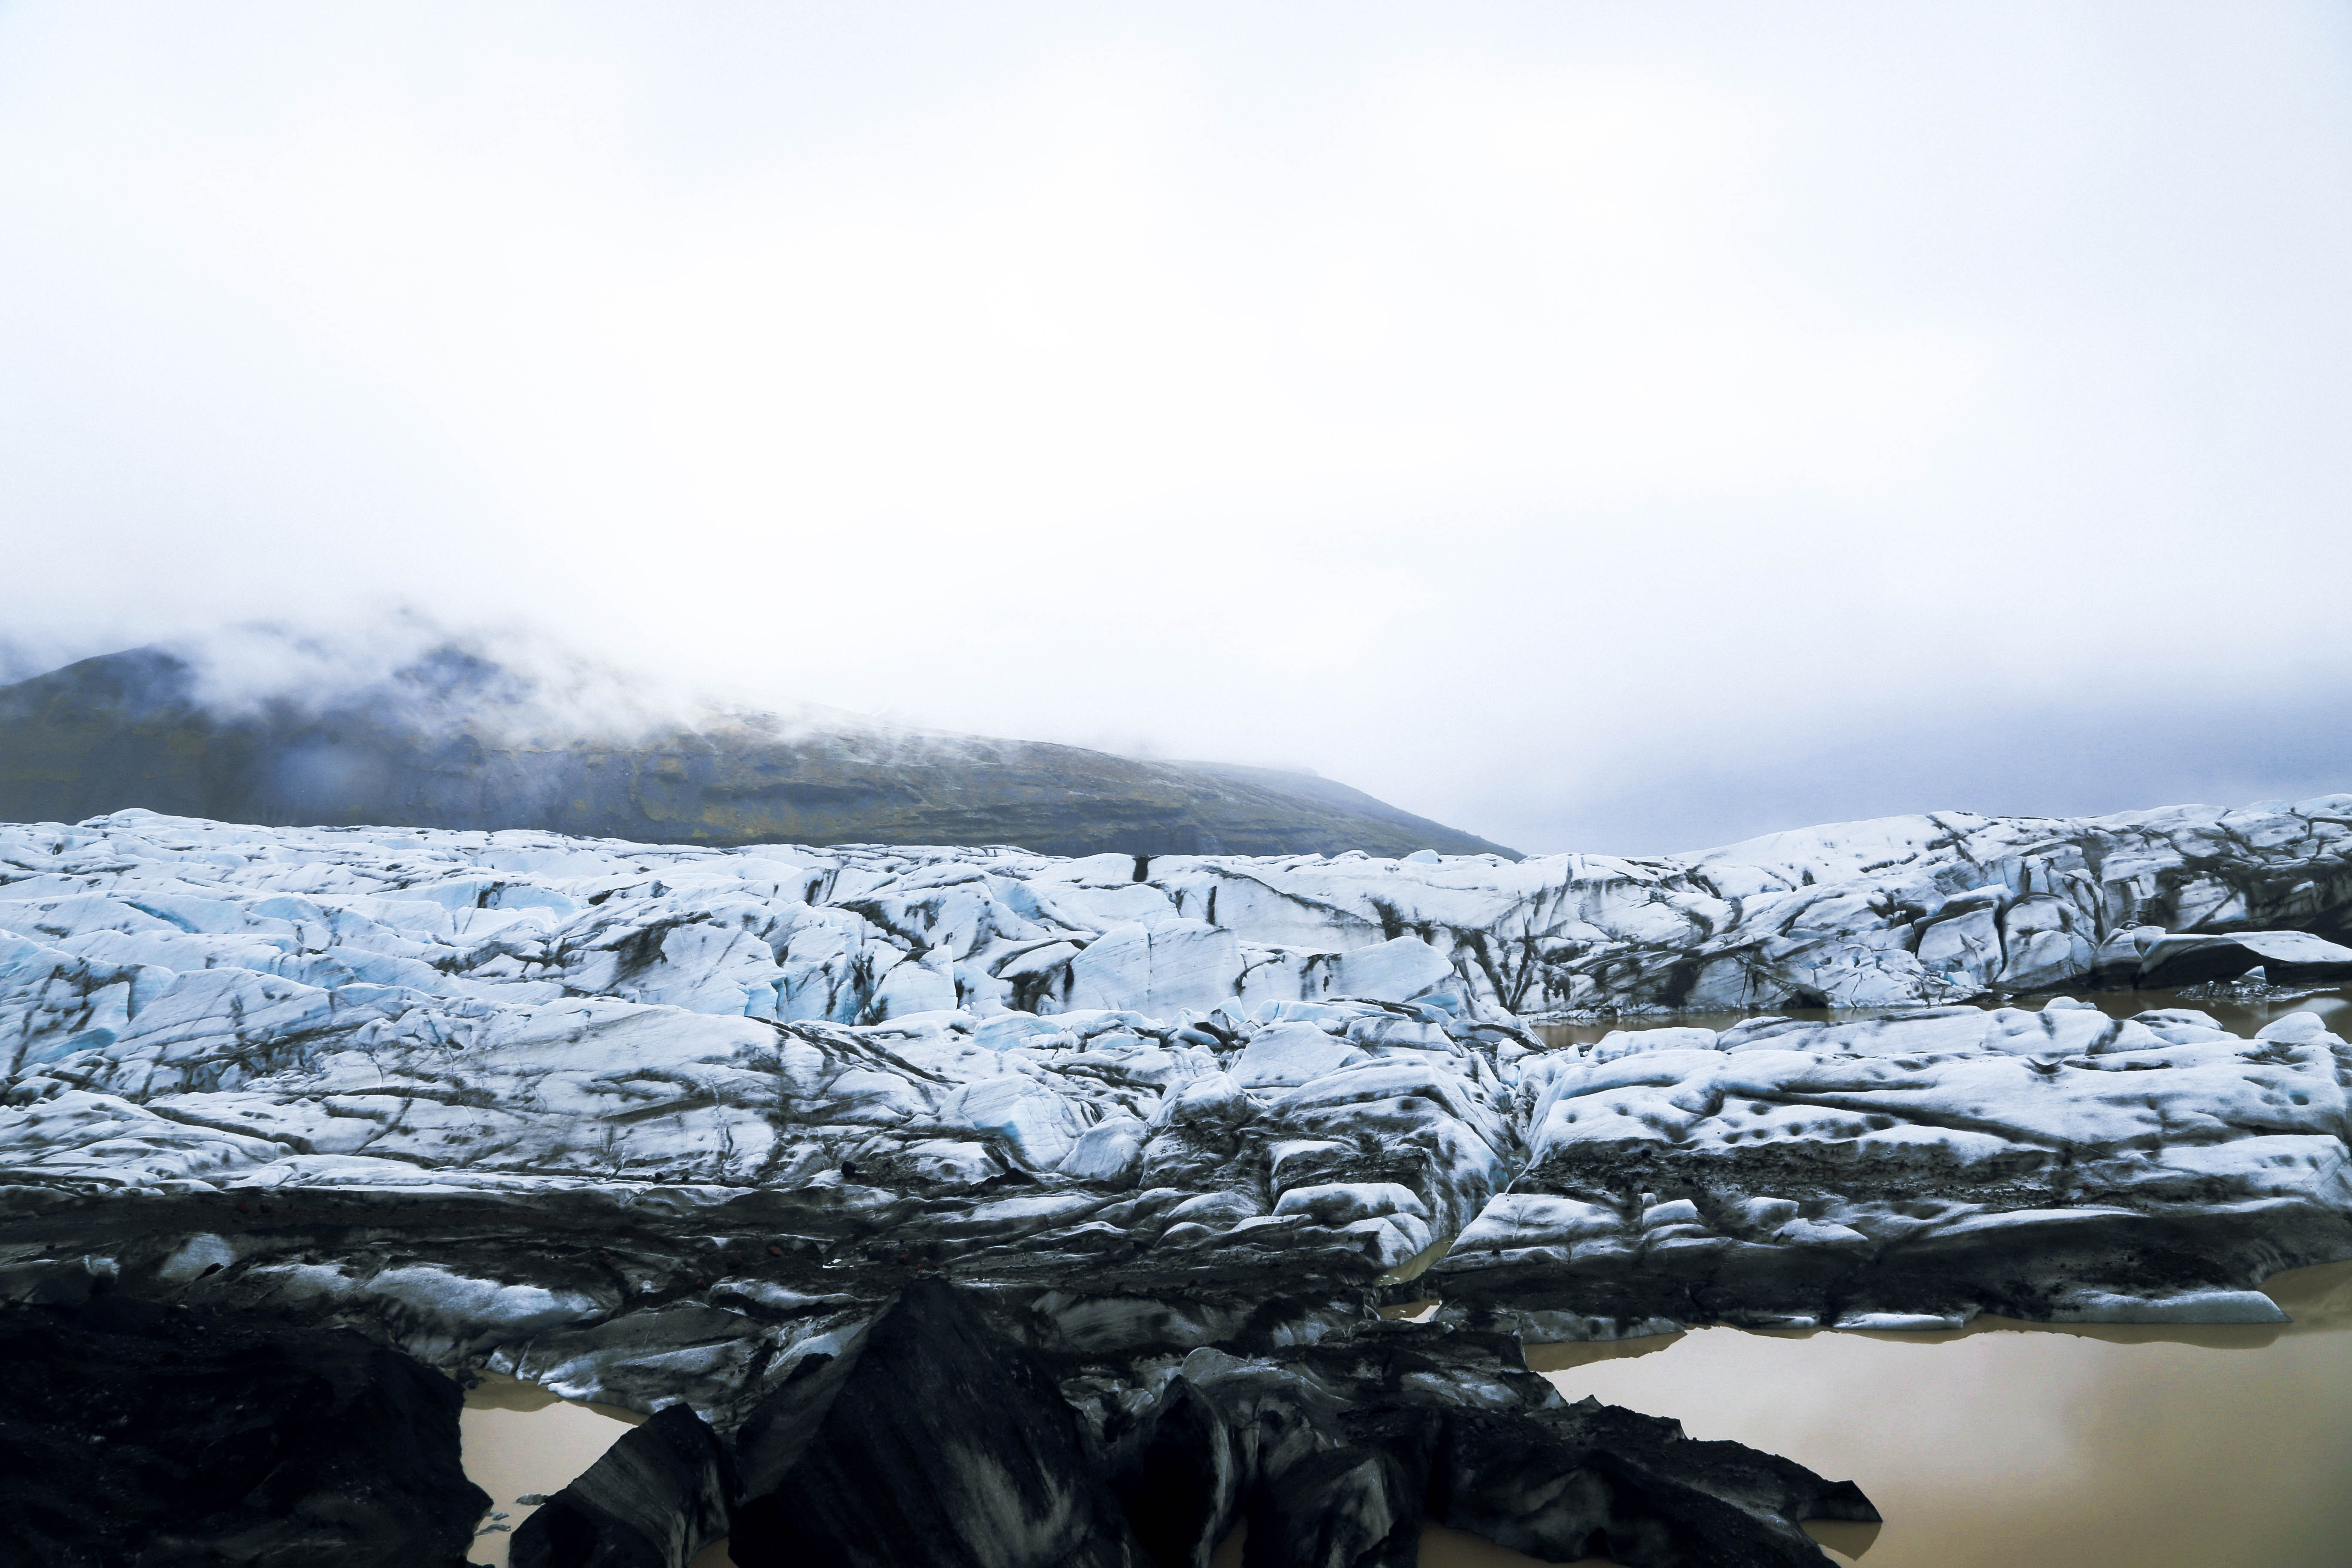 Snowy glaciers cracked with ice in Skaftafell